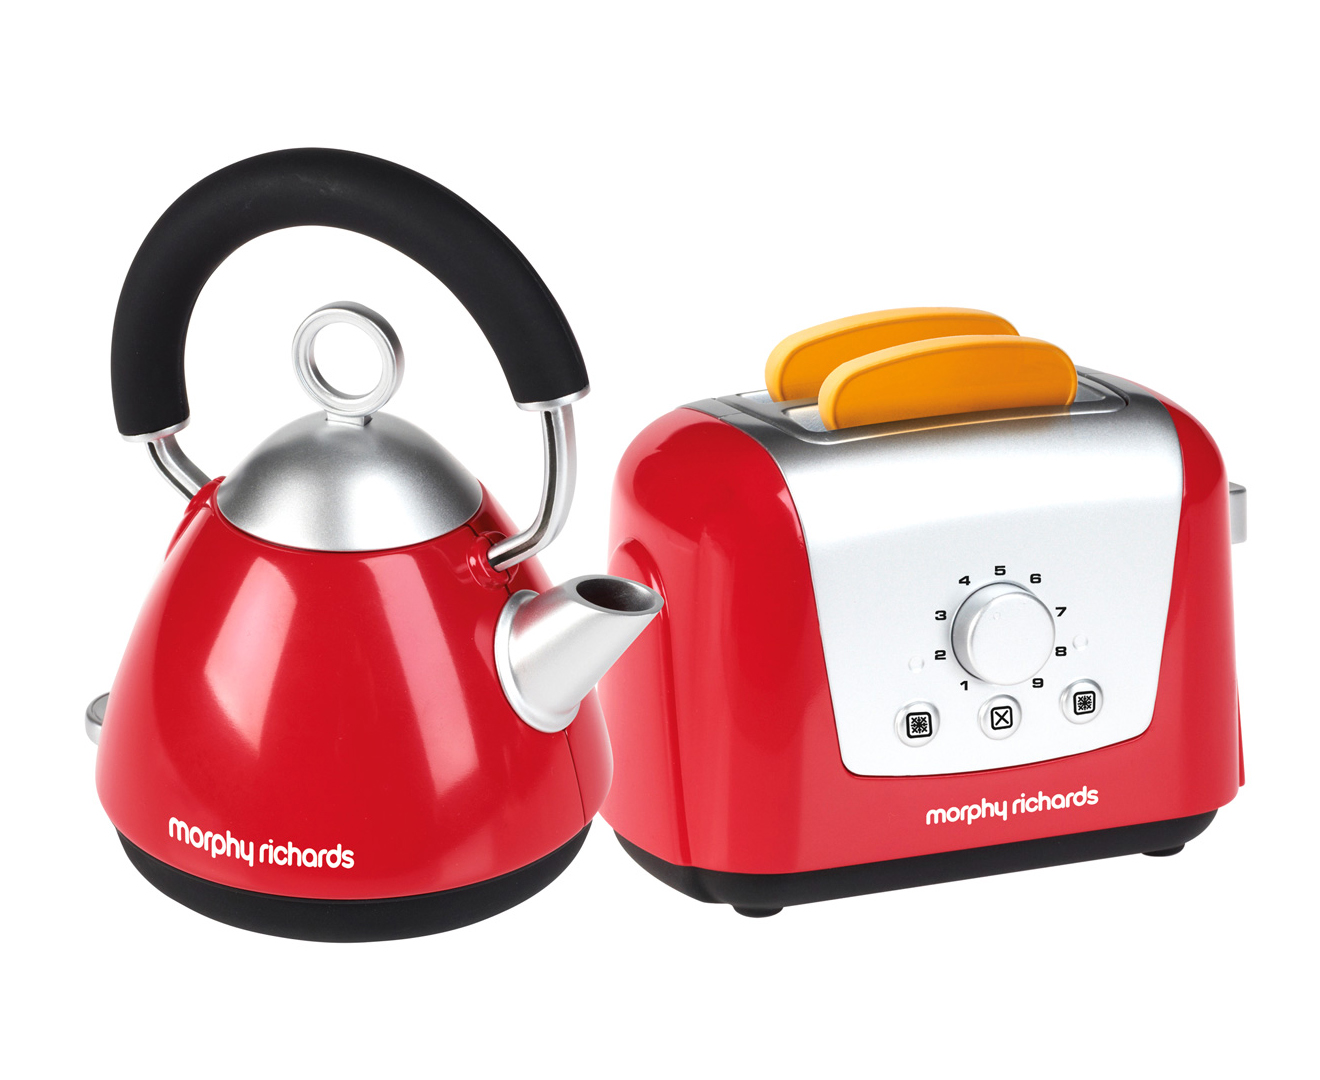 morphy richards red kitchen accessories casdon morphy richards kitchen set black catch au 9291